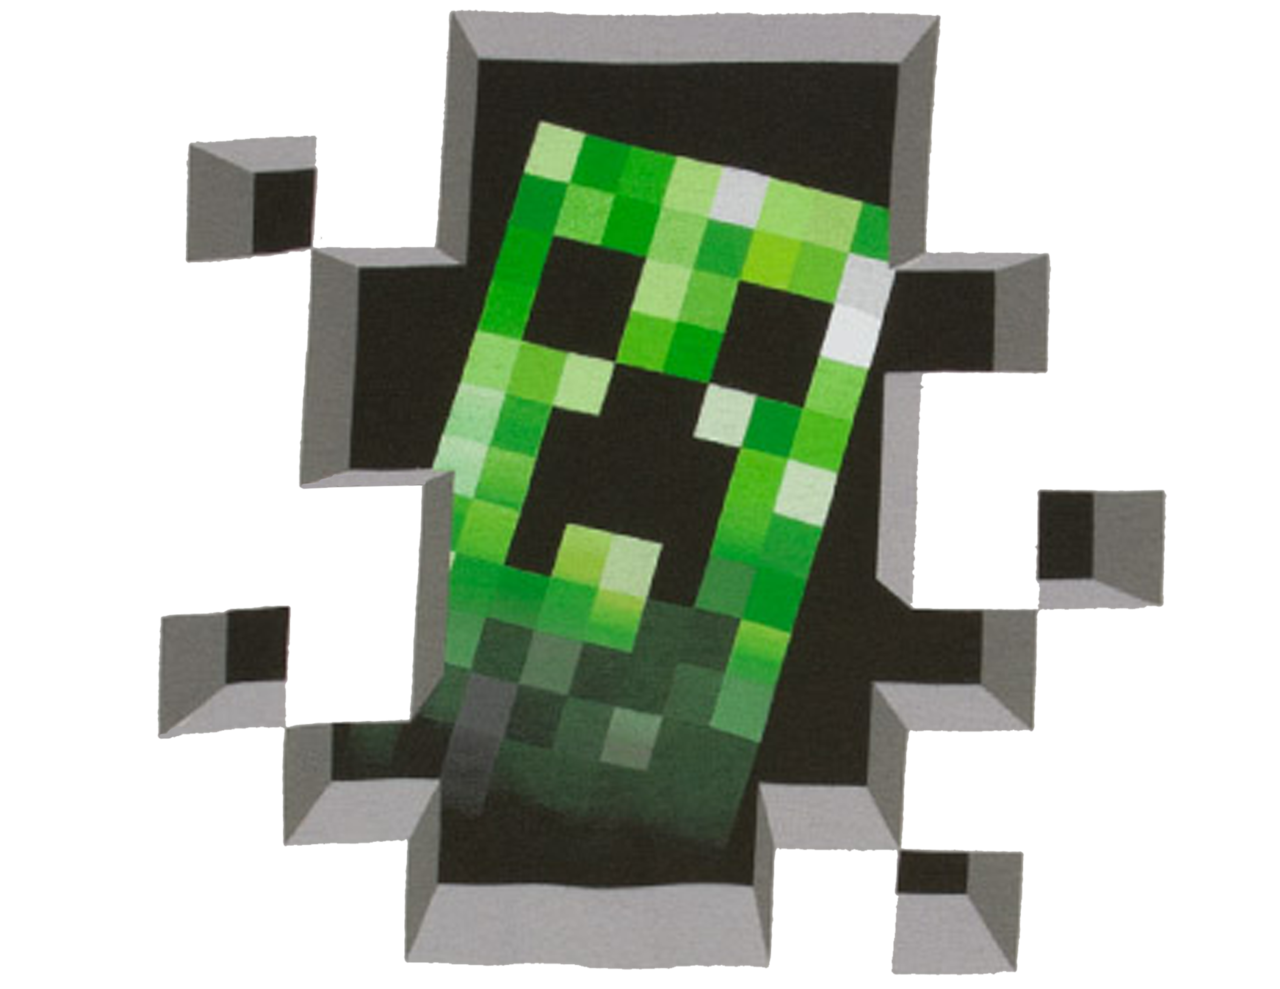 minecraft png transparent minecraft images pluspng #11511